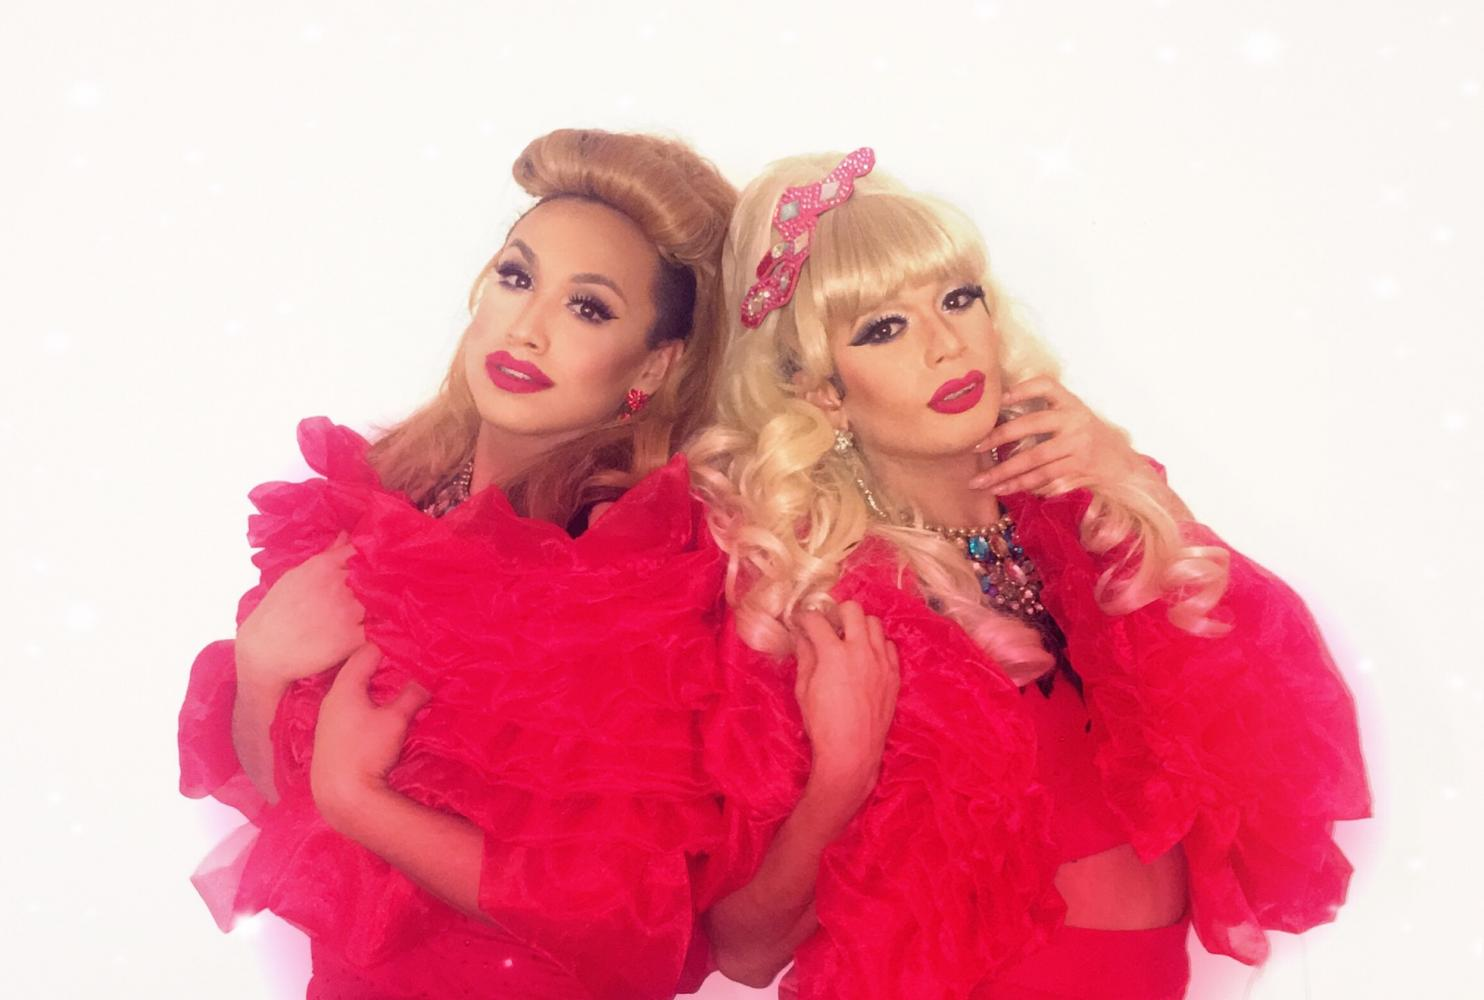 Tatianna, left, and Adriana Diamond, right, don matching red ensembles for a Christmas Day show at Faces Nightclub in 2016. The event was a benefit held for LGBTQ+ families in the community who did not have a place to go to during the holiday.